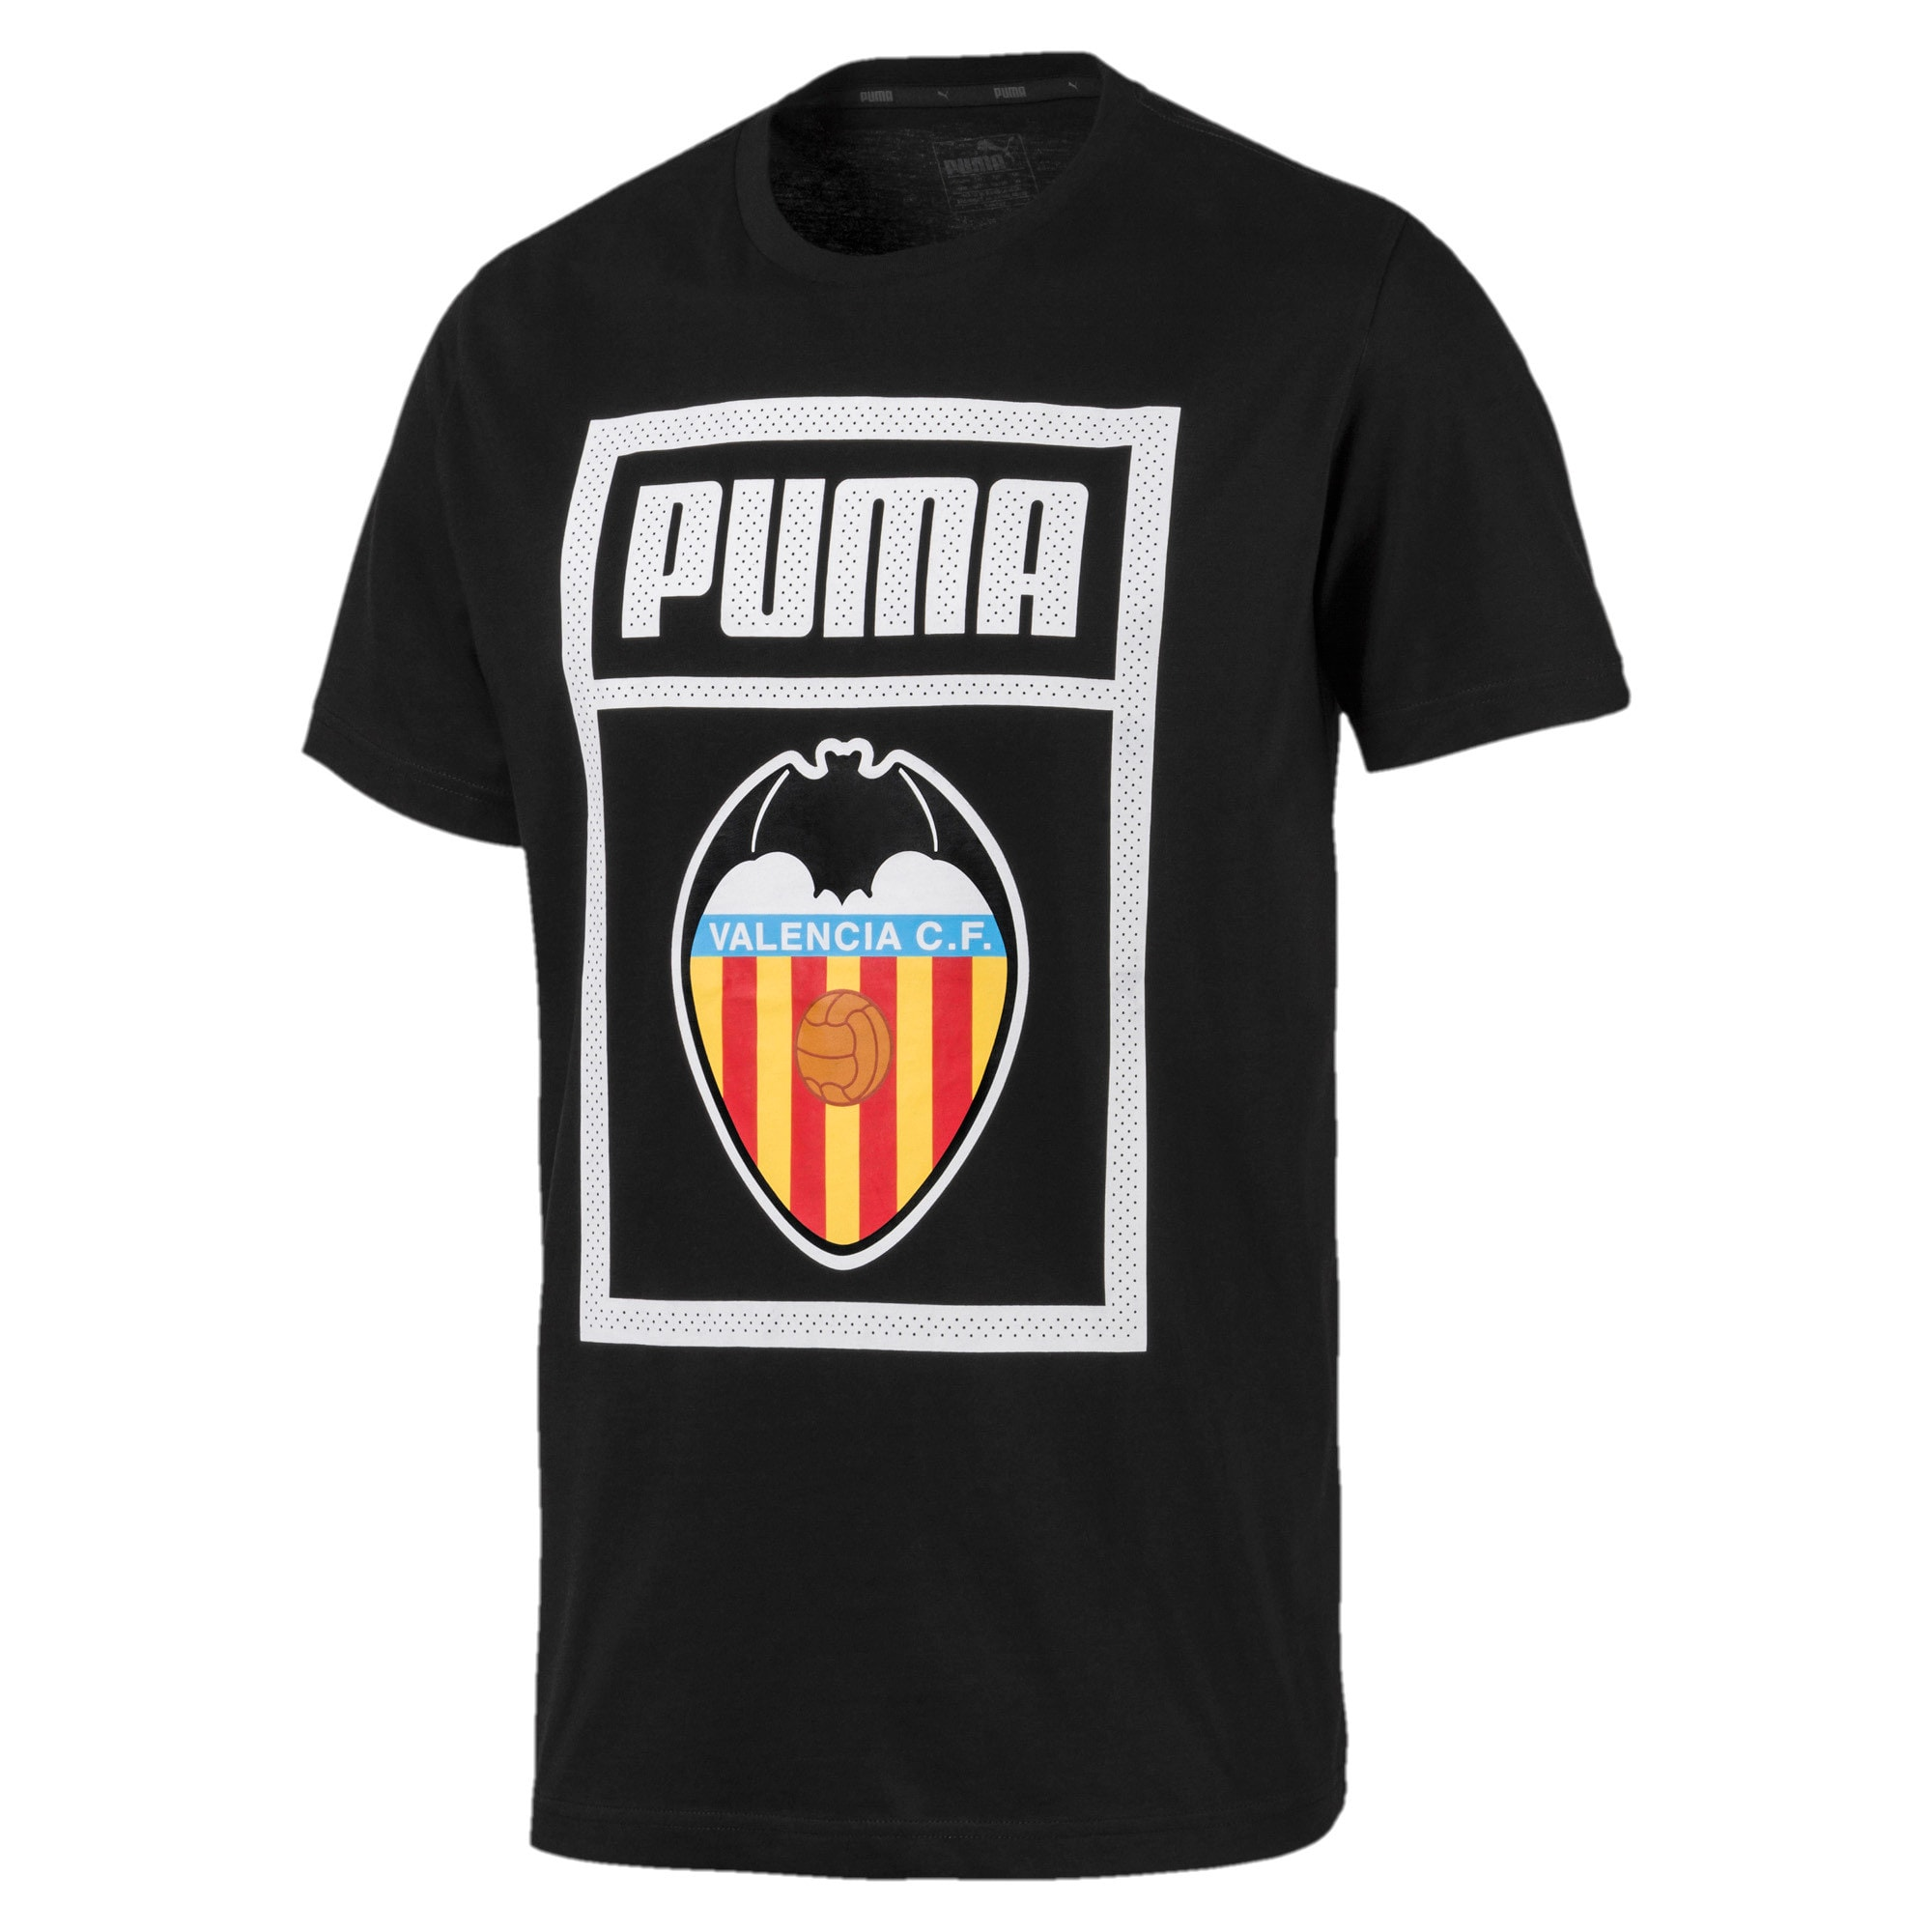 Valencia CF Shoe Tag T-shirt voor mannen, Puma Black, large